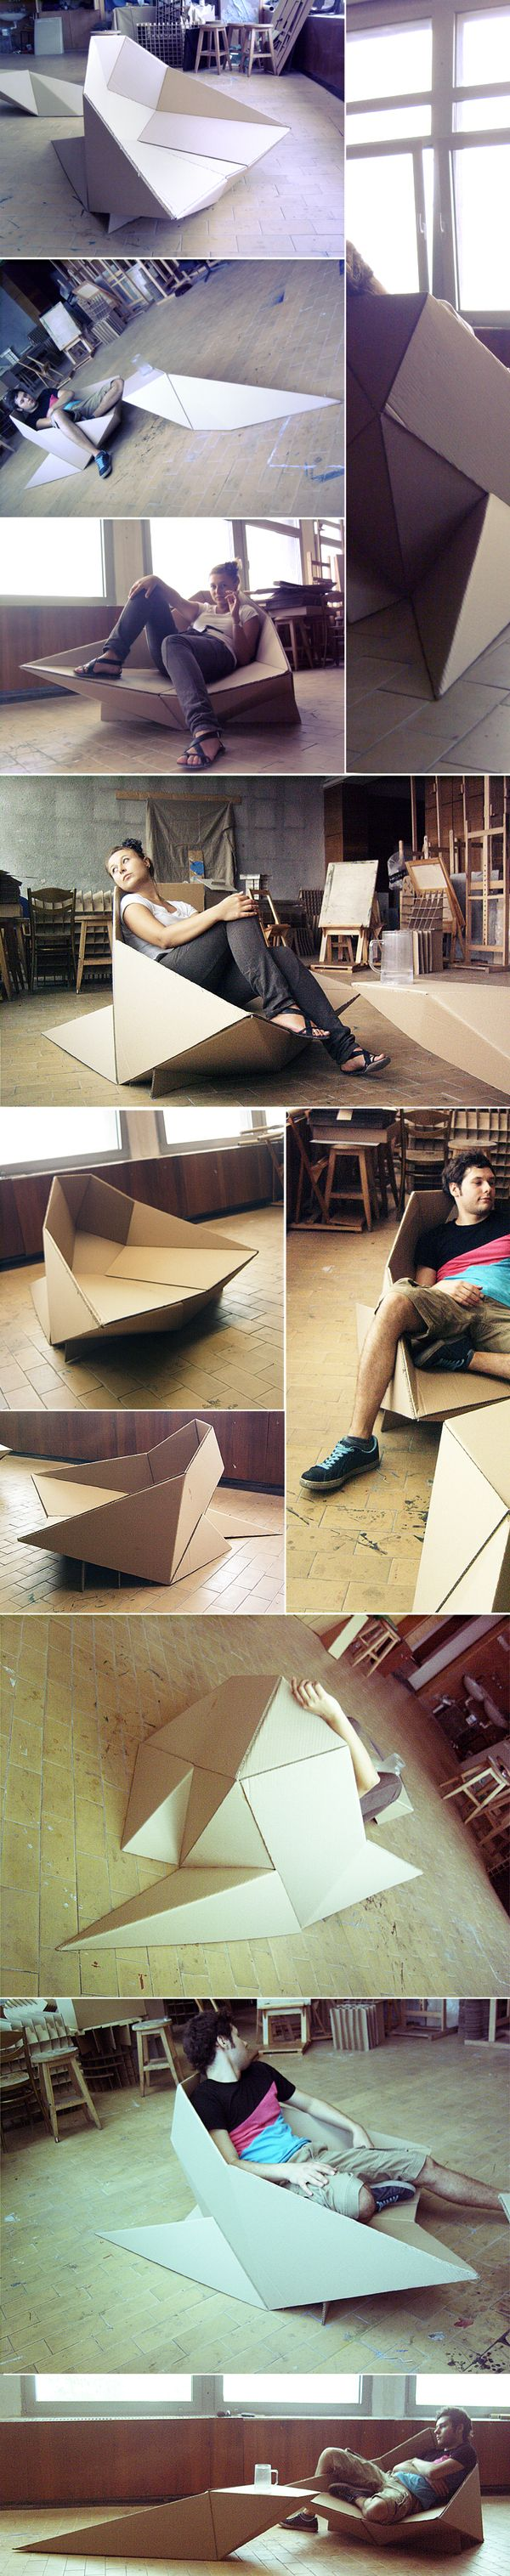 Cardboard Playground on the Behance Network